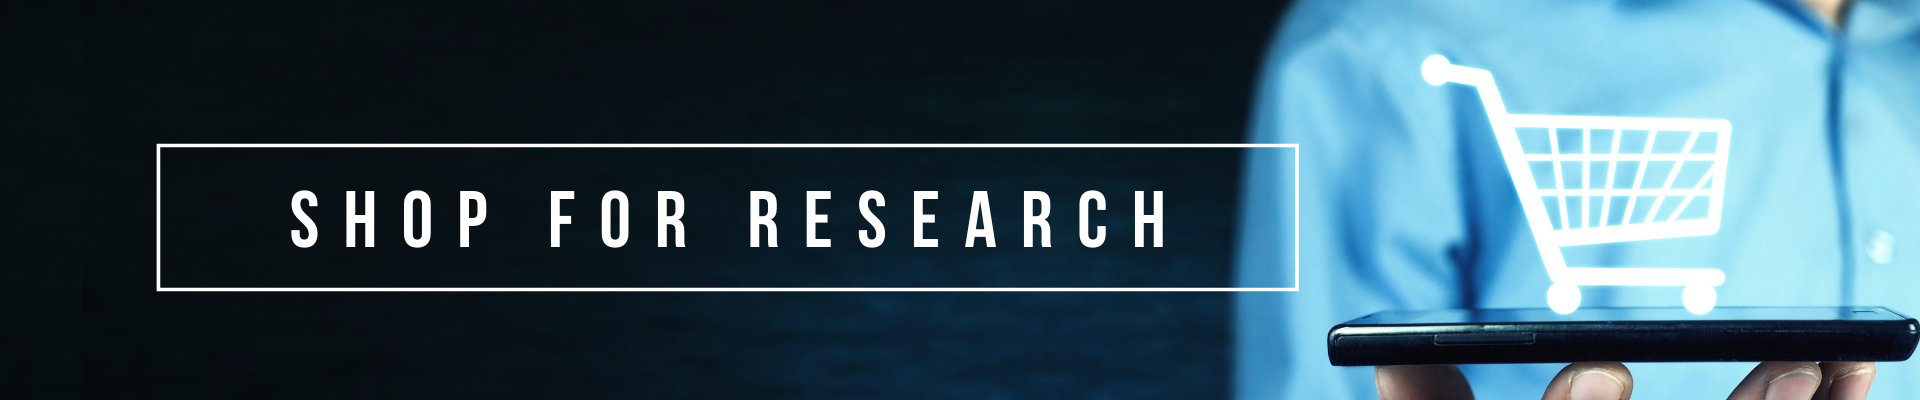 Shop for research